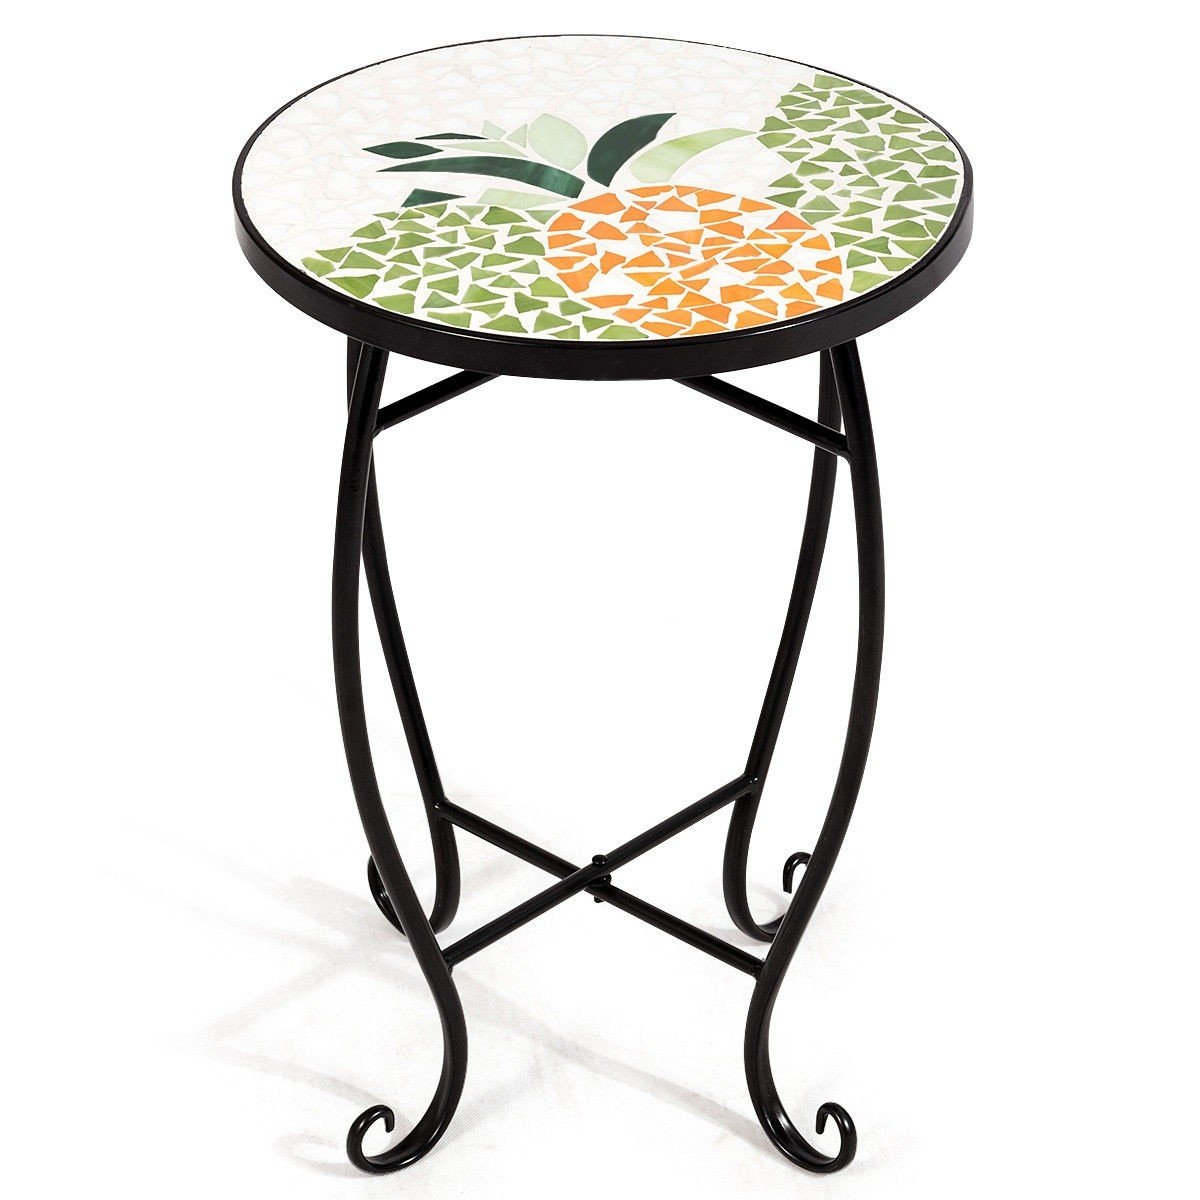 custpromo mosaic accent table metal round side bella green outdoor plant stand cobalt glass top indoor garden patio sweet pineapple kitchen inch furniture legs pottery barn